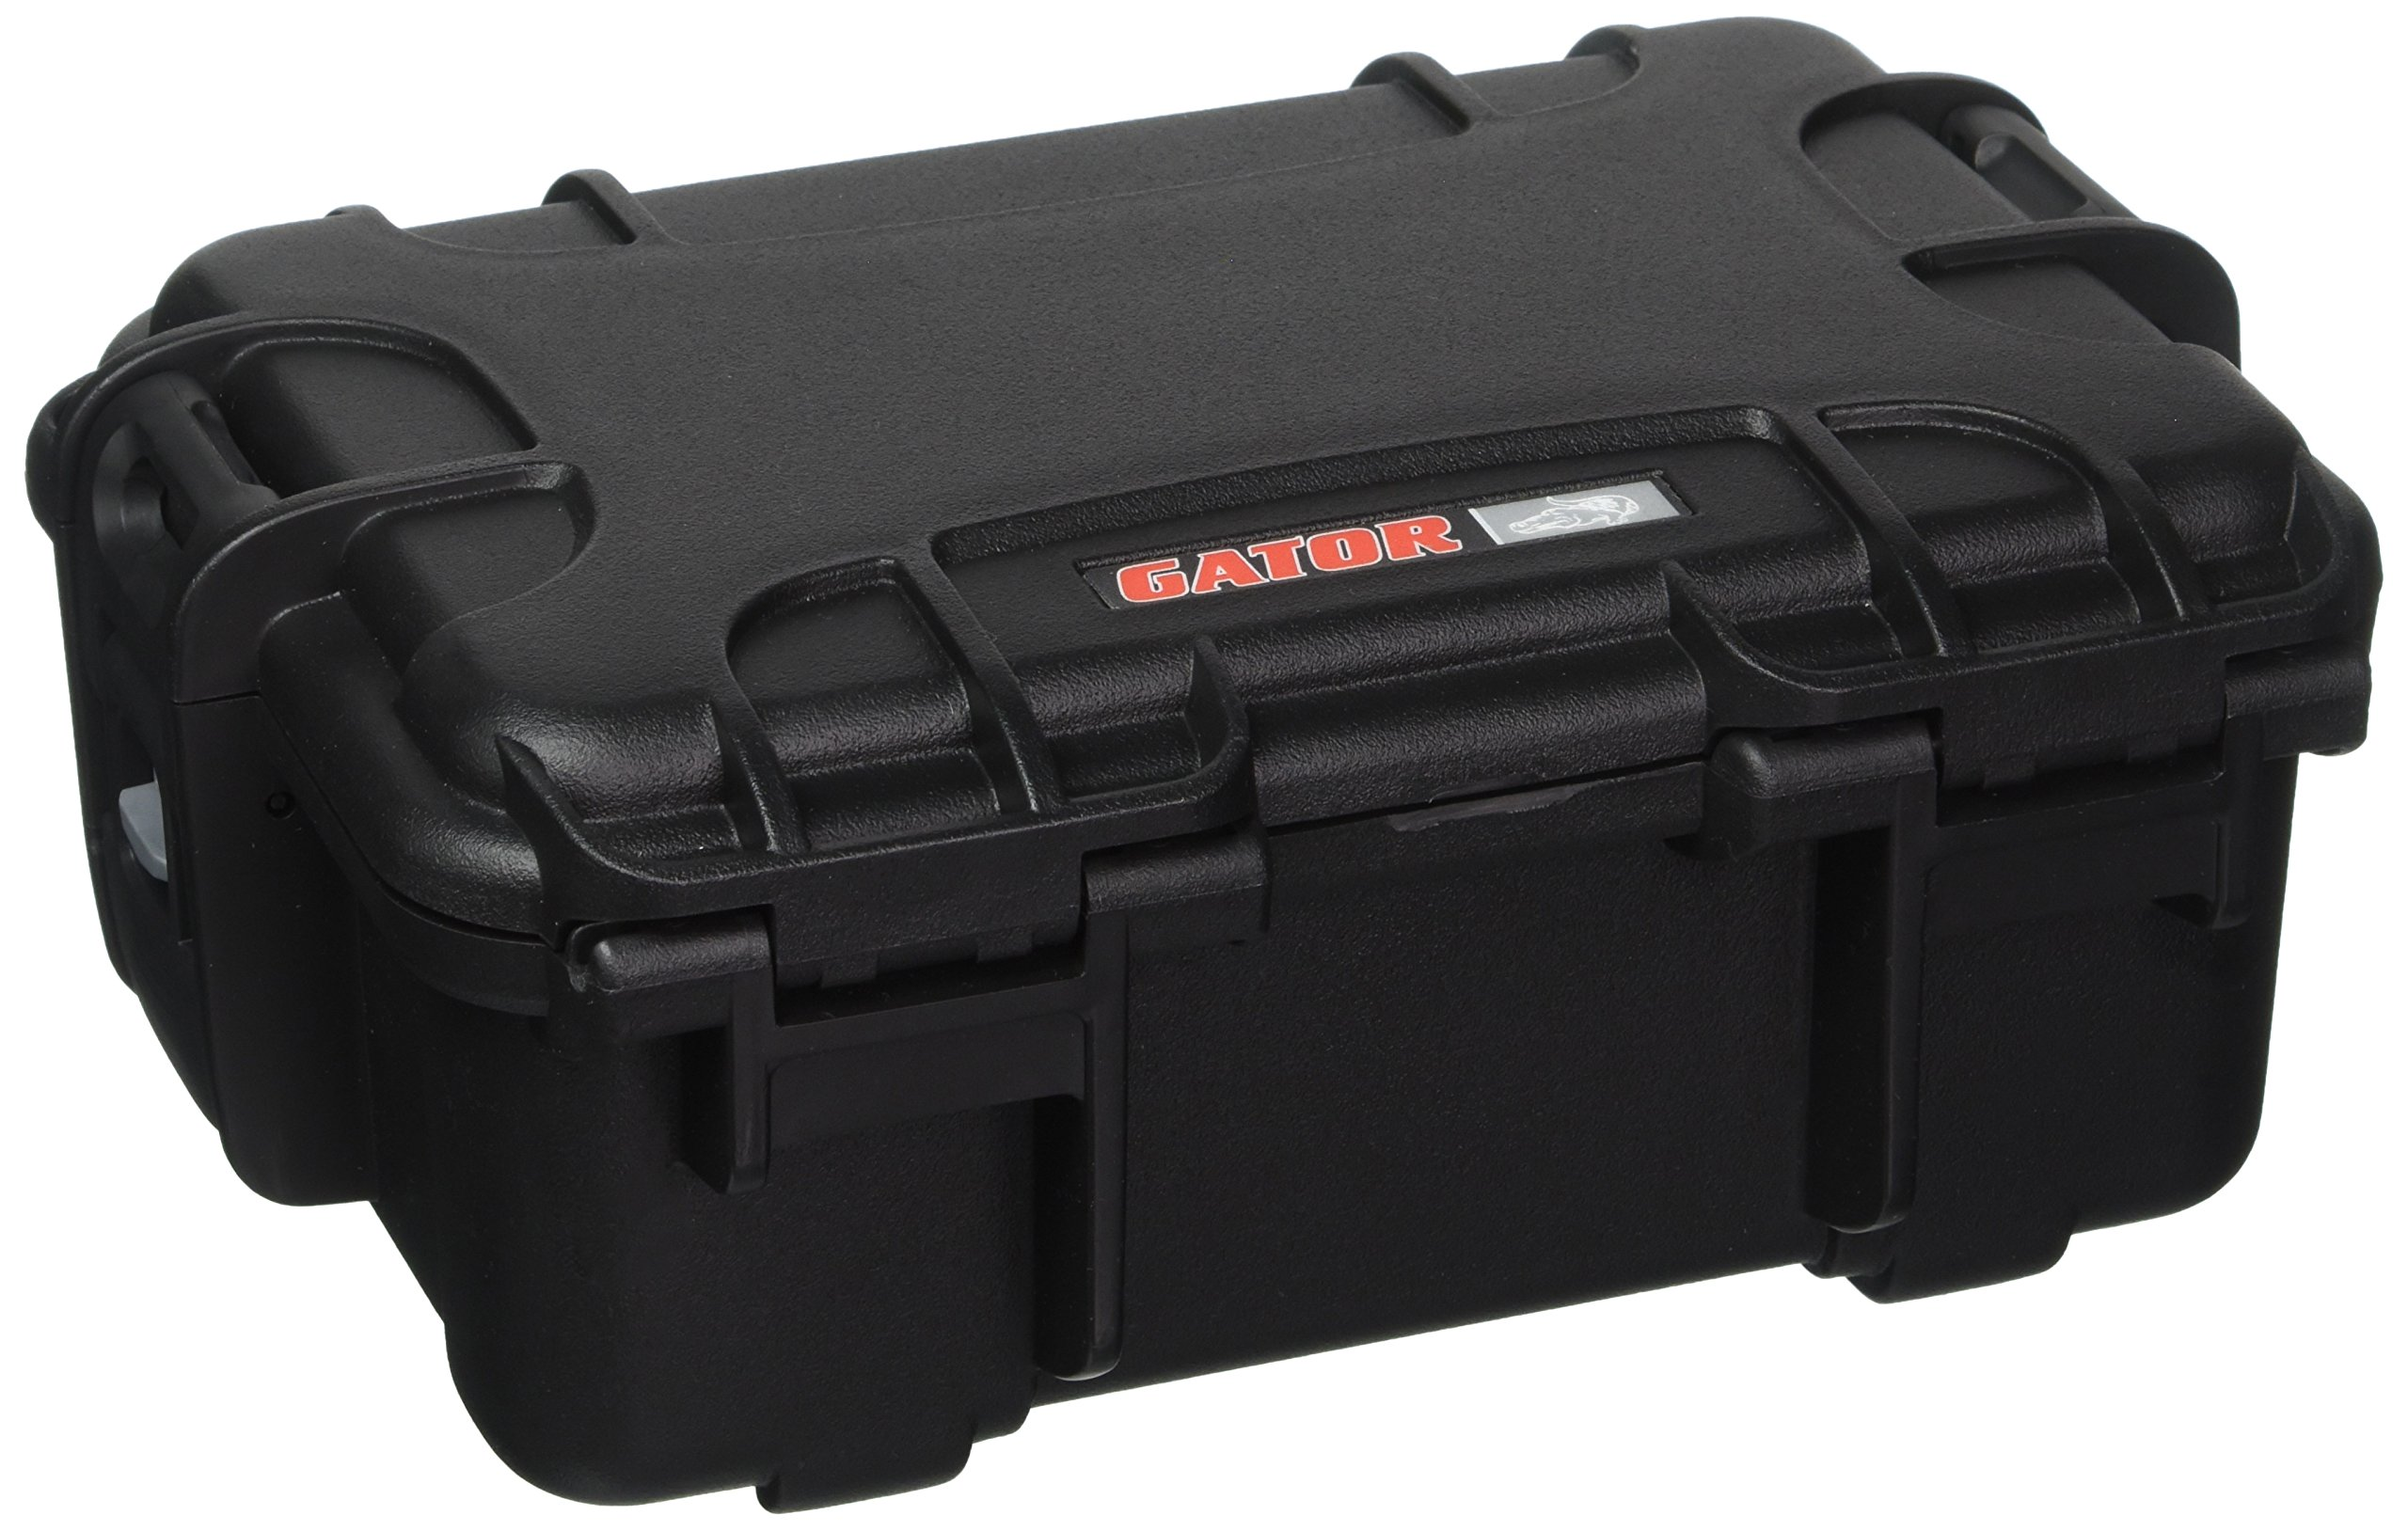 Gator Cases GU-0705-03-WPDF Titan Series Waterproof Utility/Equipment with Diced Foam Insert 7.4'' x 4.9'' x 3.1'' by Gator